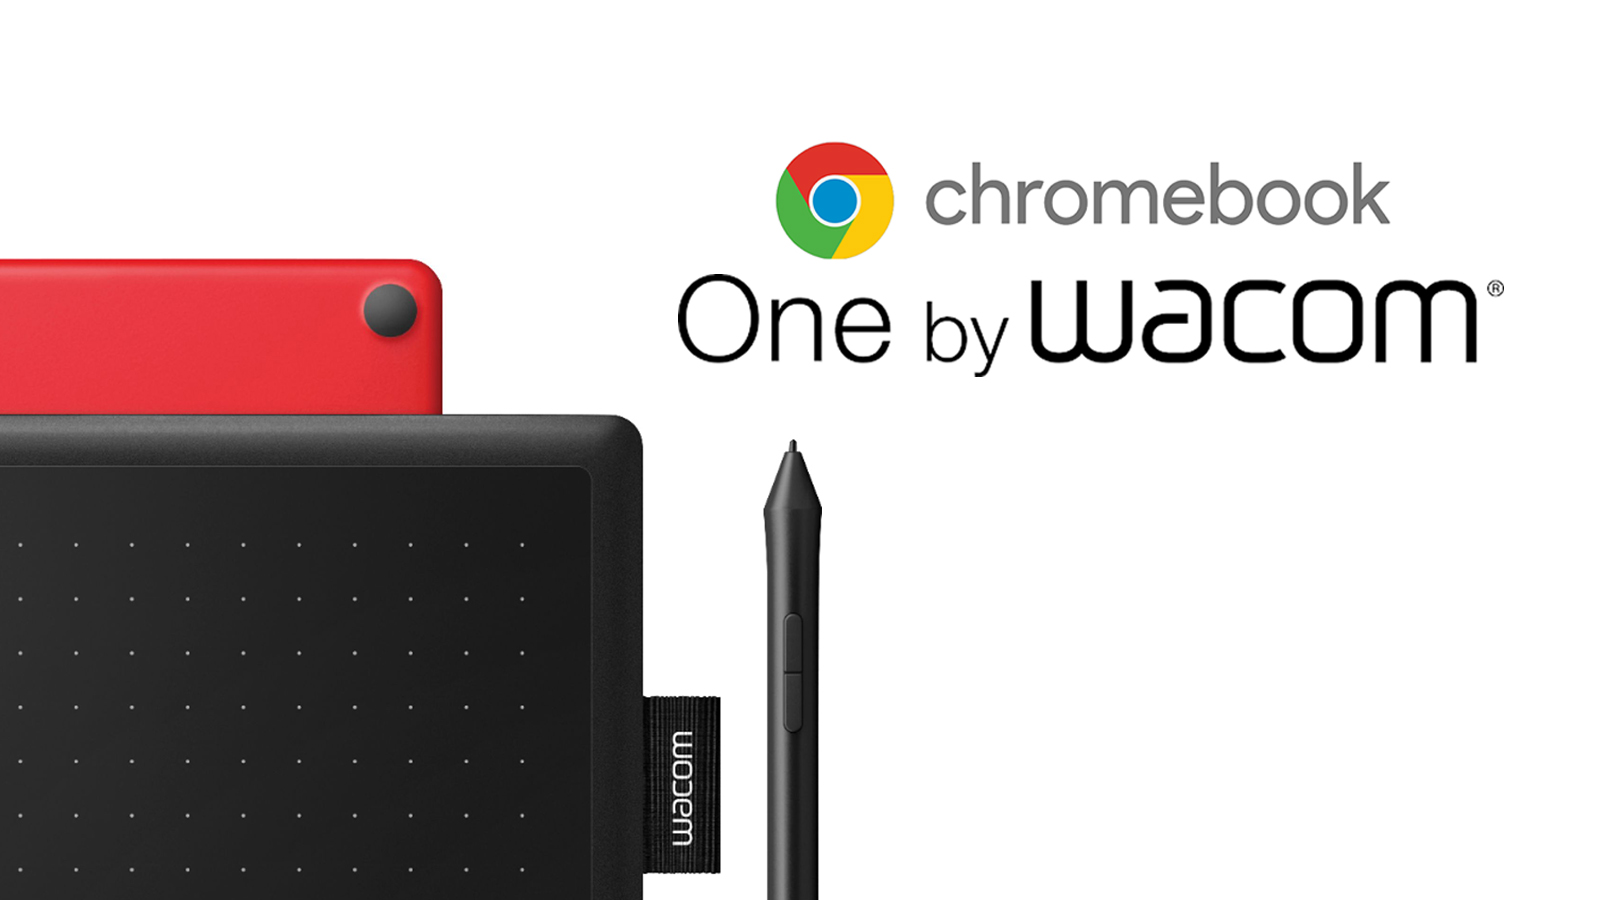 Introducing the One by Wacom – the first fully compatible graphics tablet for Chromebooks